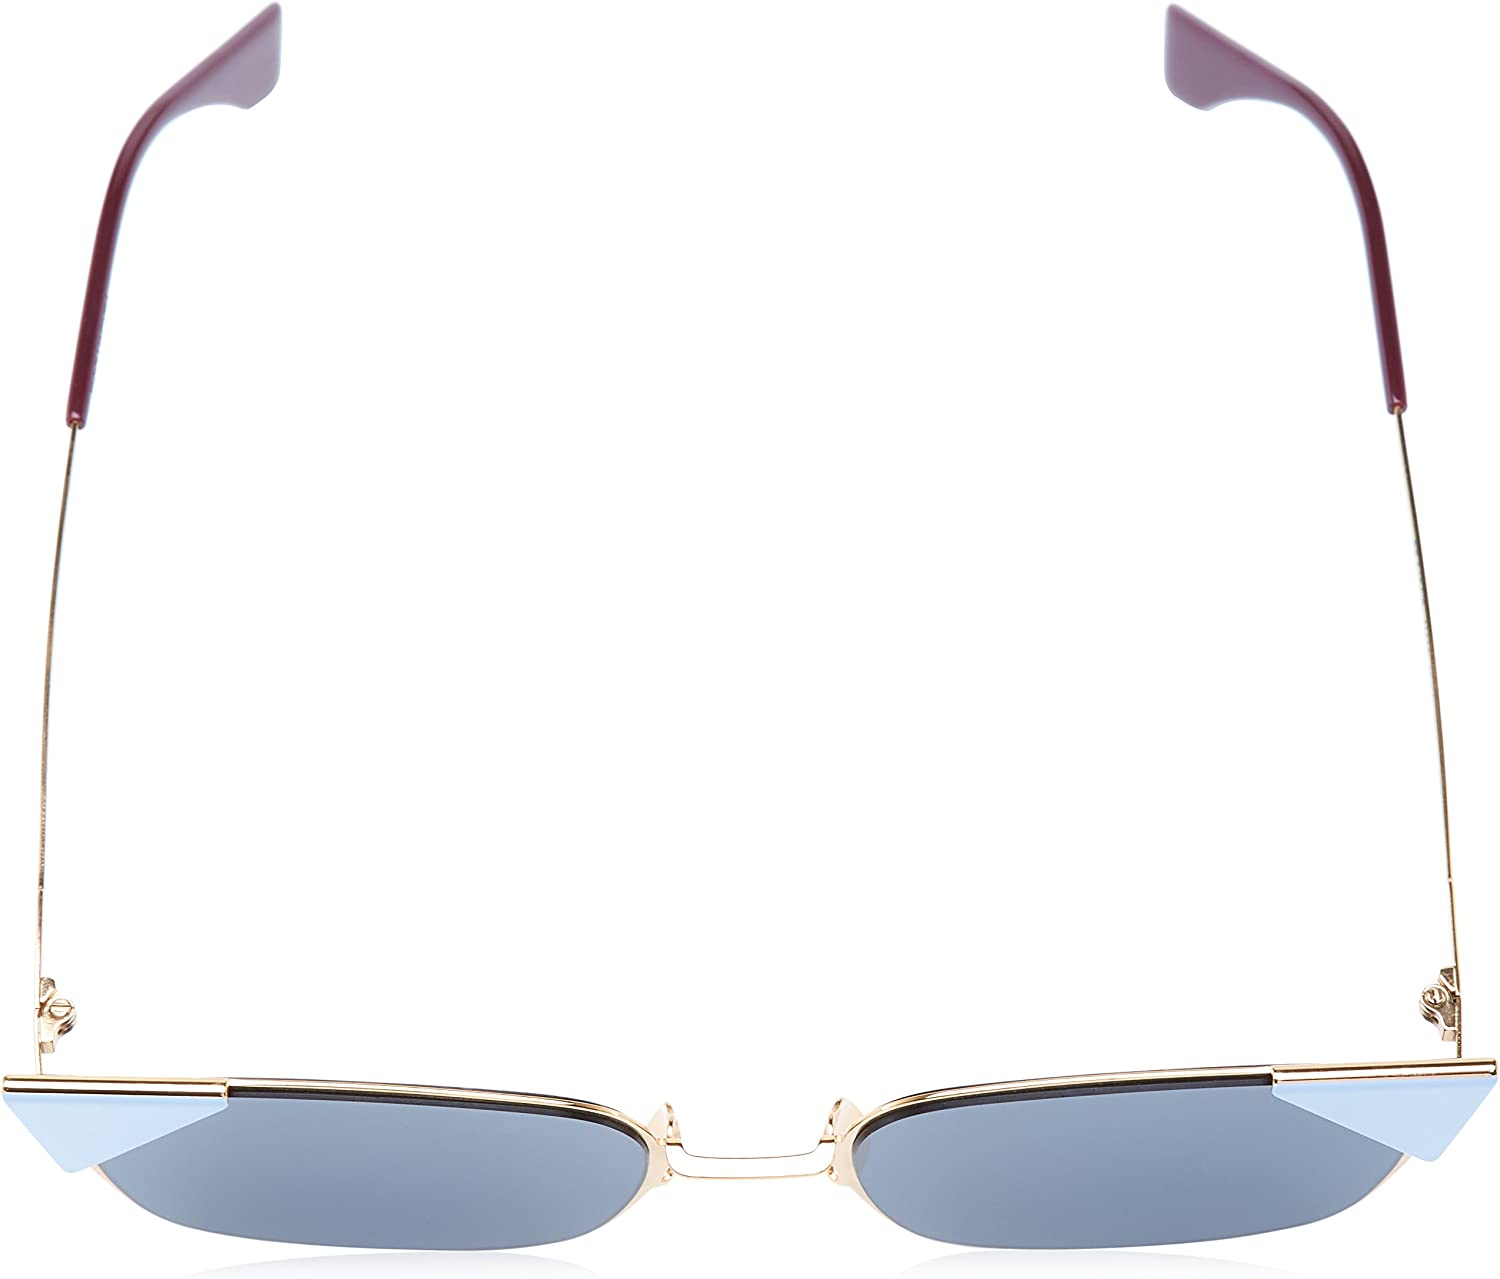 Fendi Occhiali da Sole Donna Modello 0191/S Multicolore (Rose Gold)